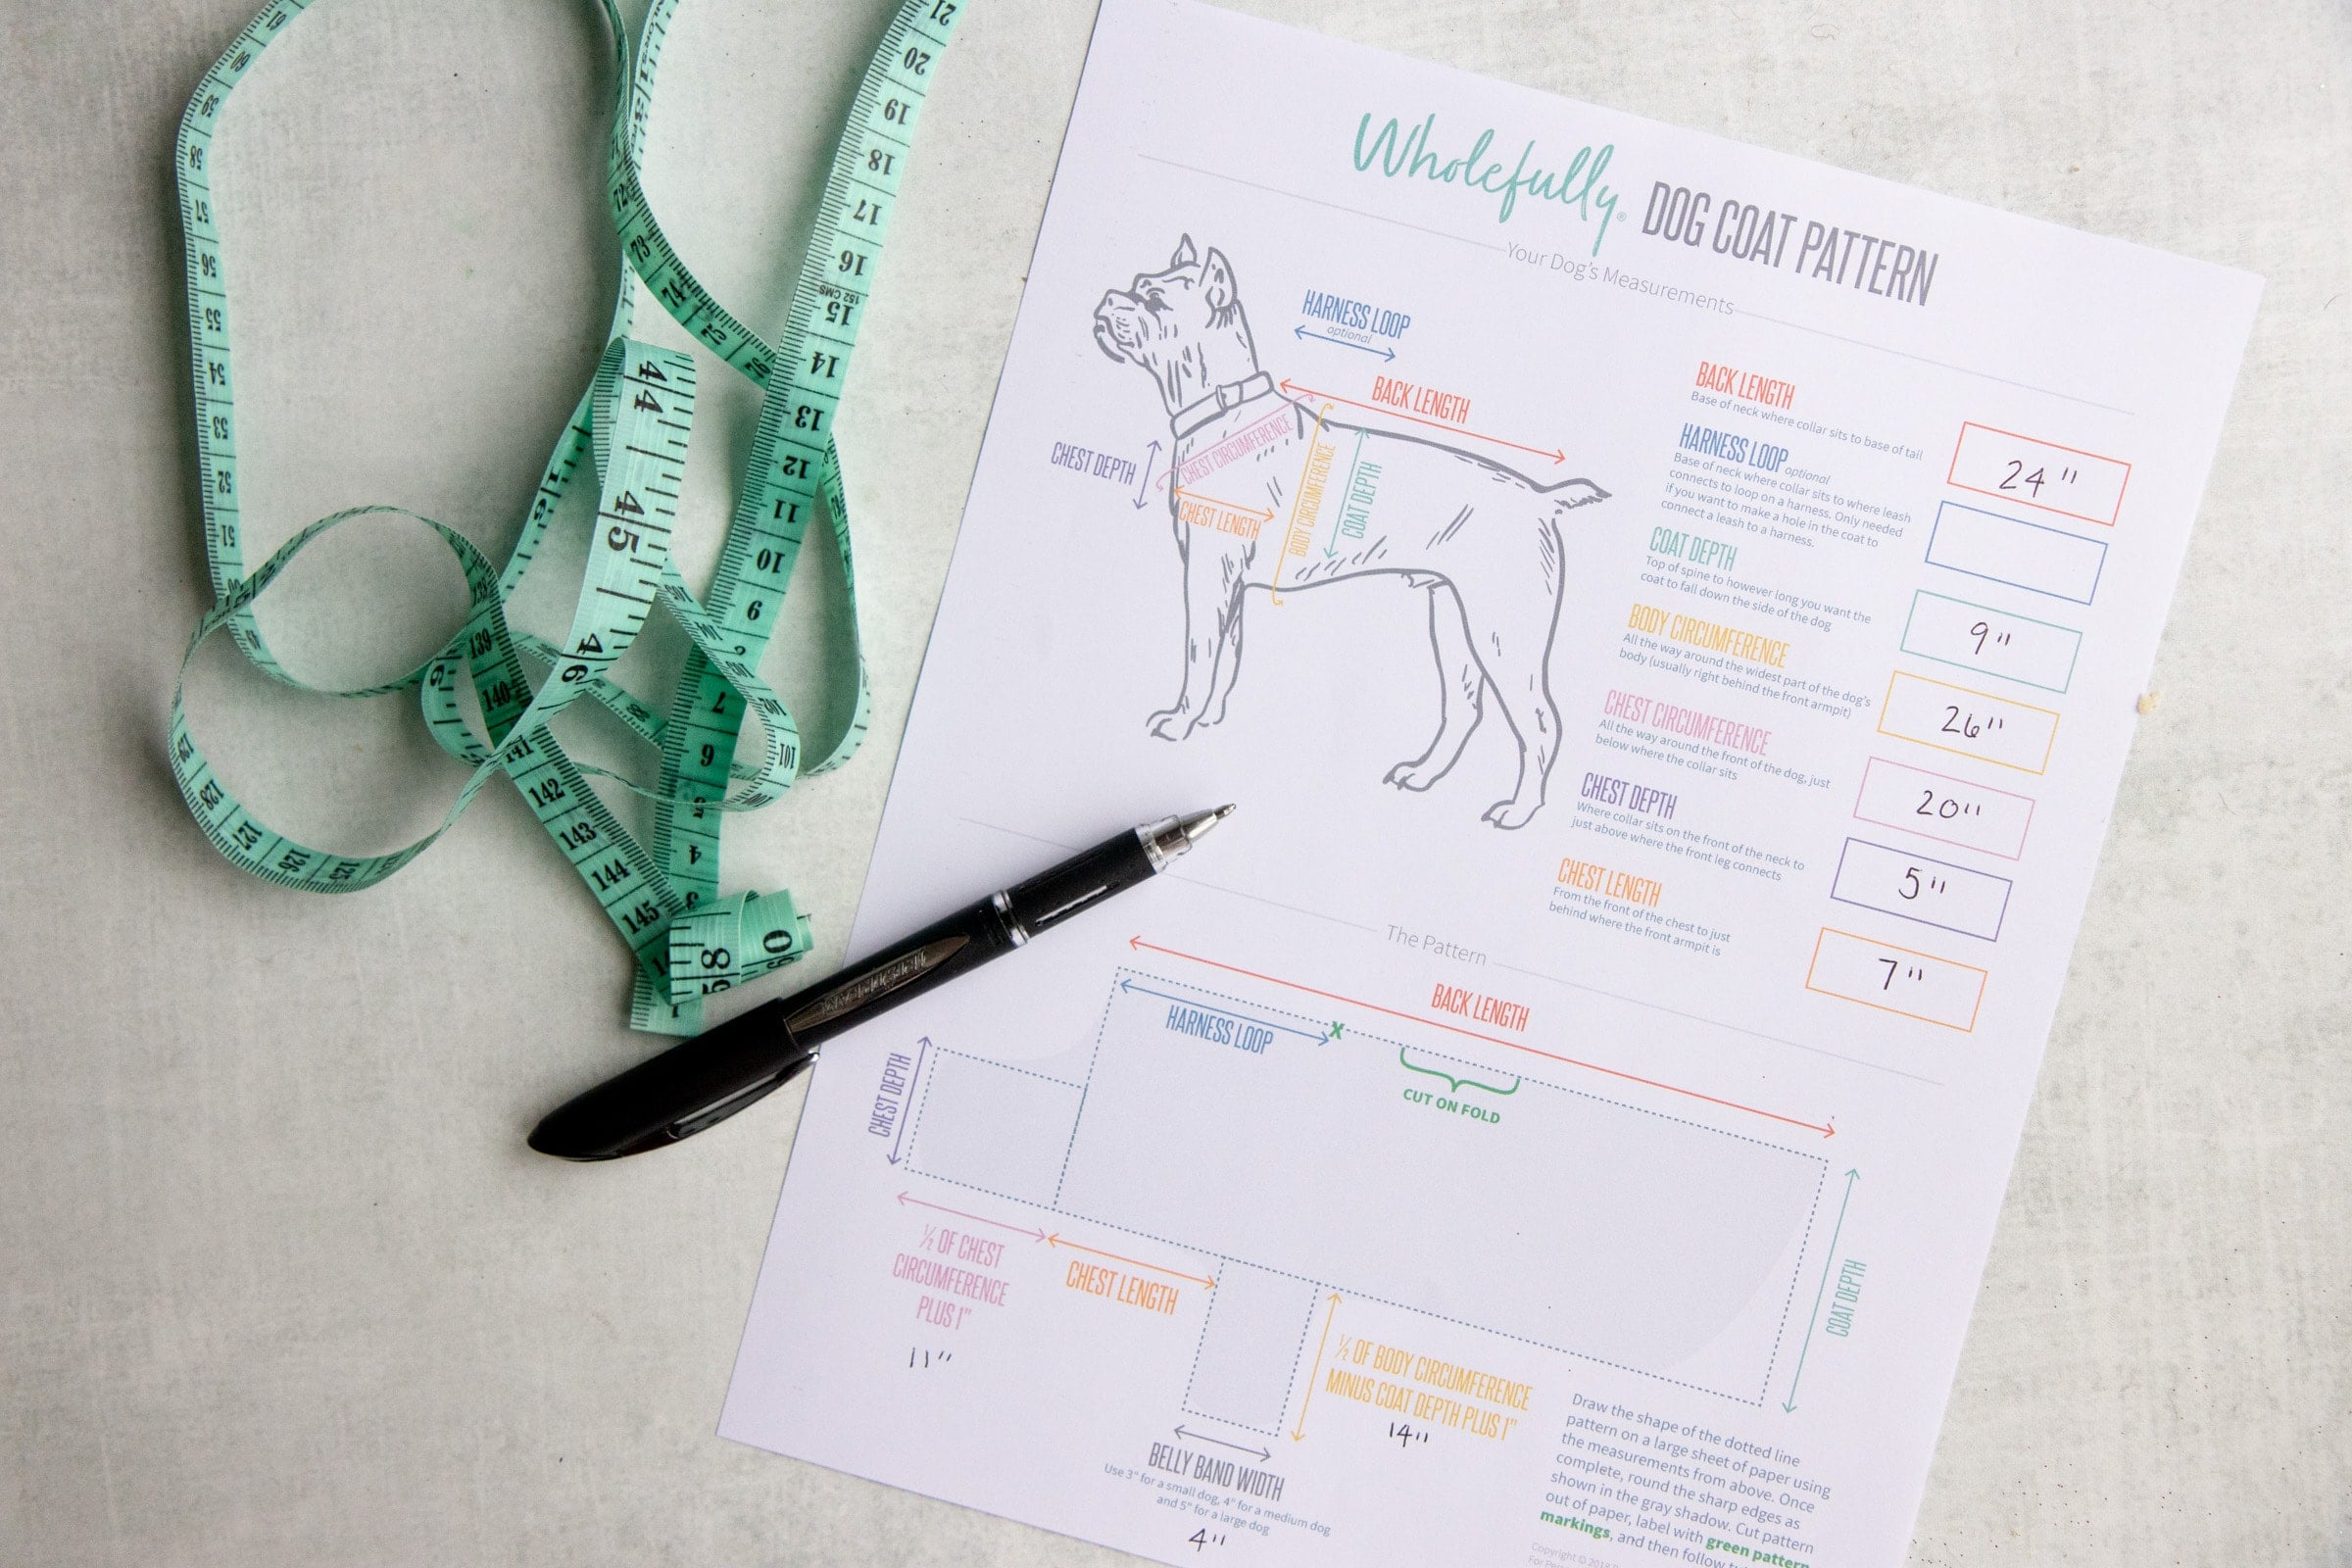 Measuring tape and pen on top of a measurements printout for a Wholefully Dog Coat Pattern